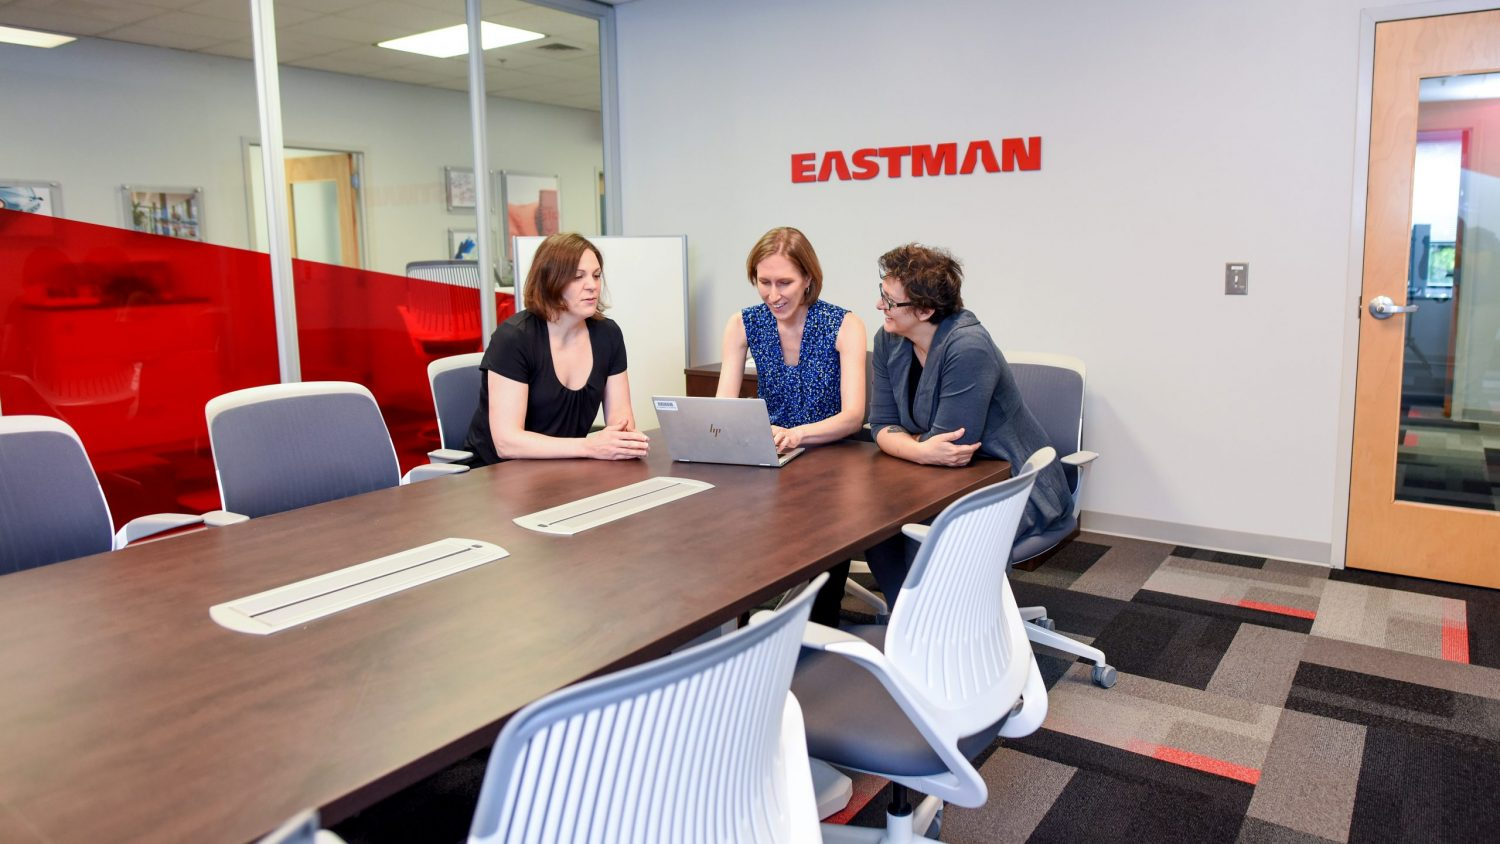 Employees collaborate in the Eastman office.